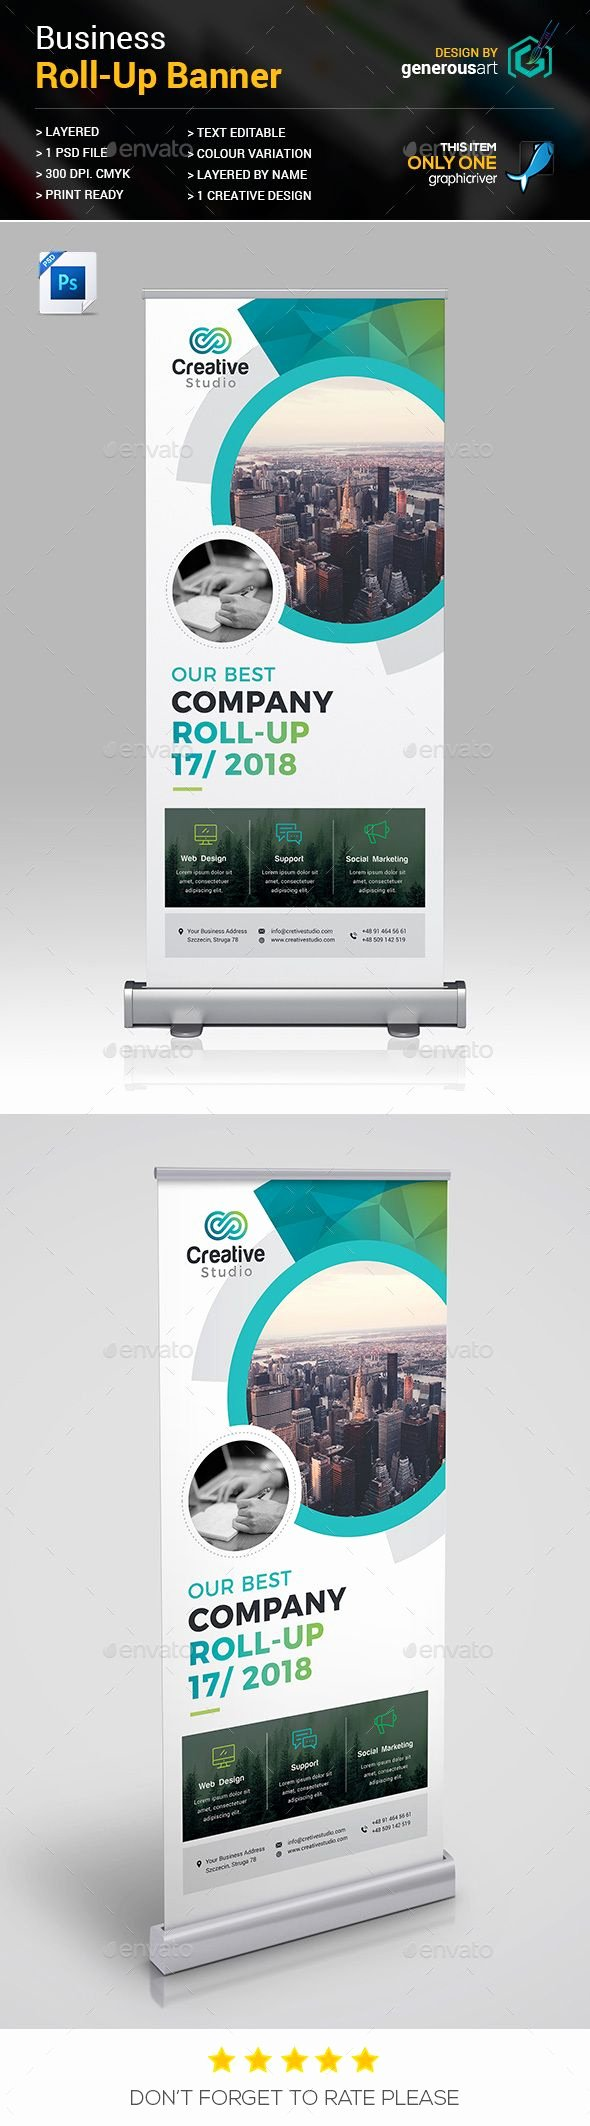 Retractable Banner Template Psd New Roll Up Banner Template Psd